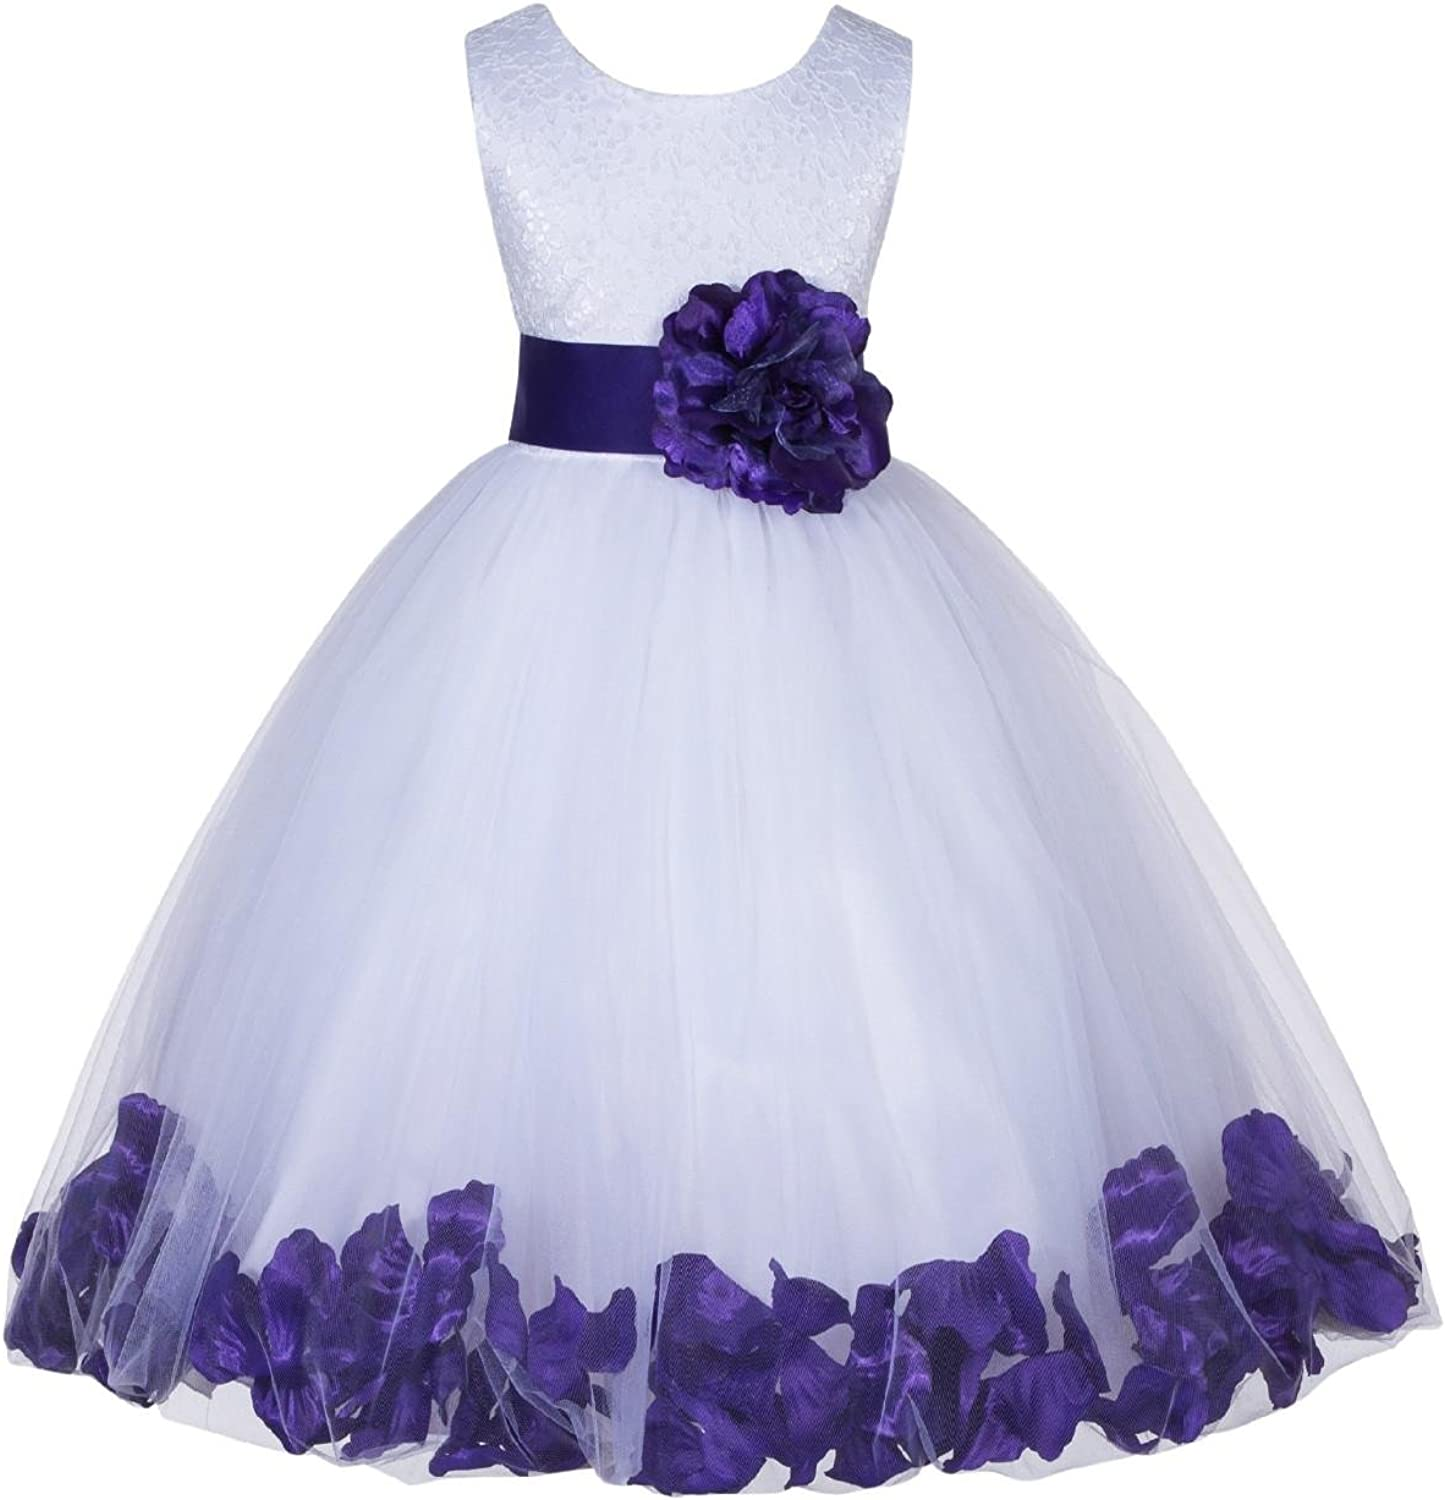 Wedding Pageant Floral Lace top Rose Petals White Tulle Flower Girl Dress 165T